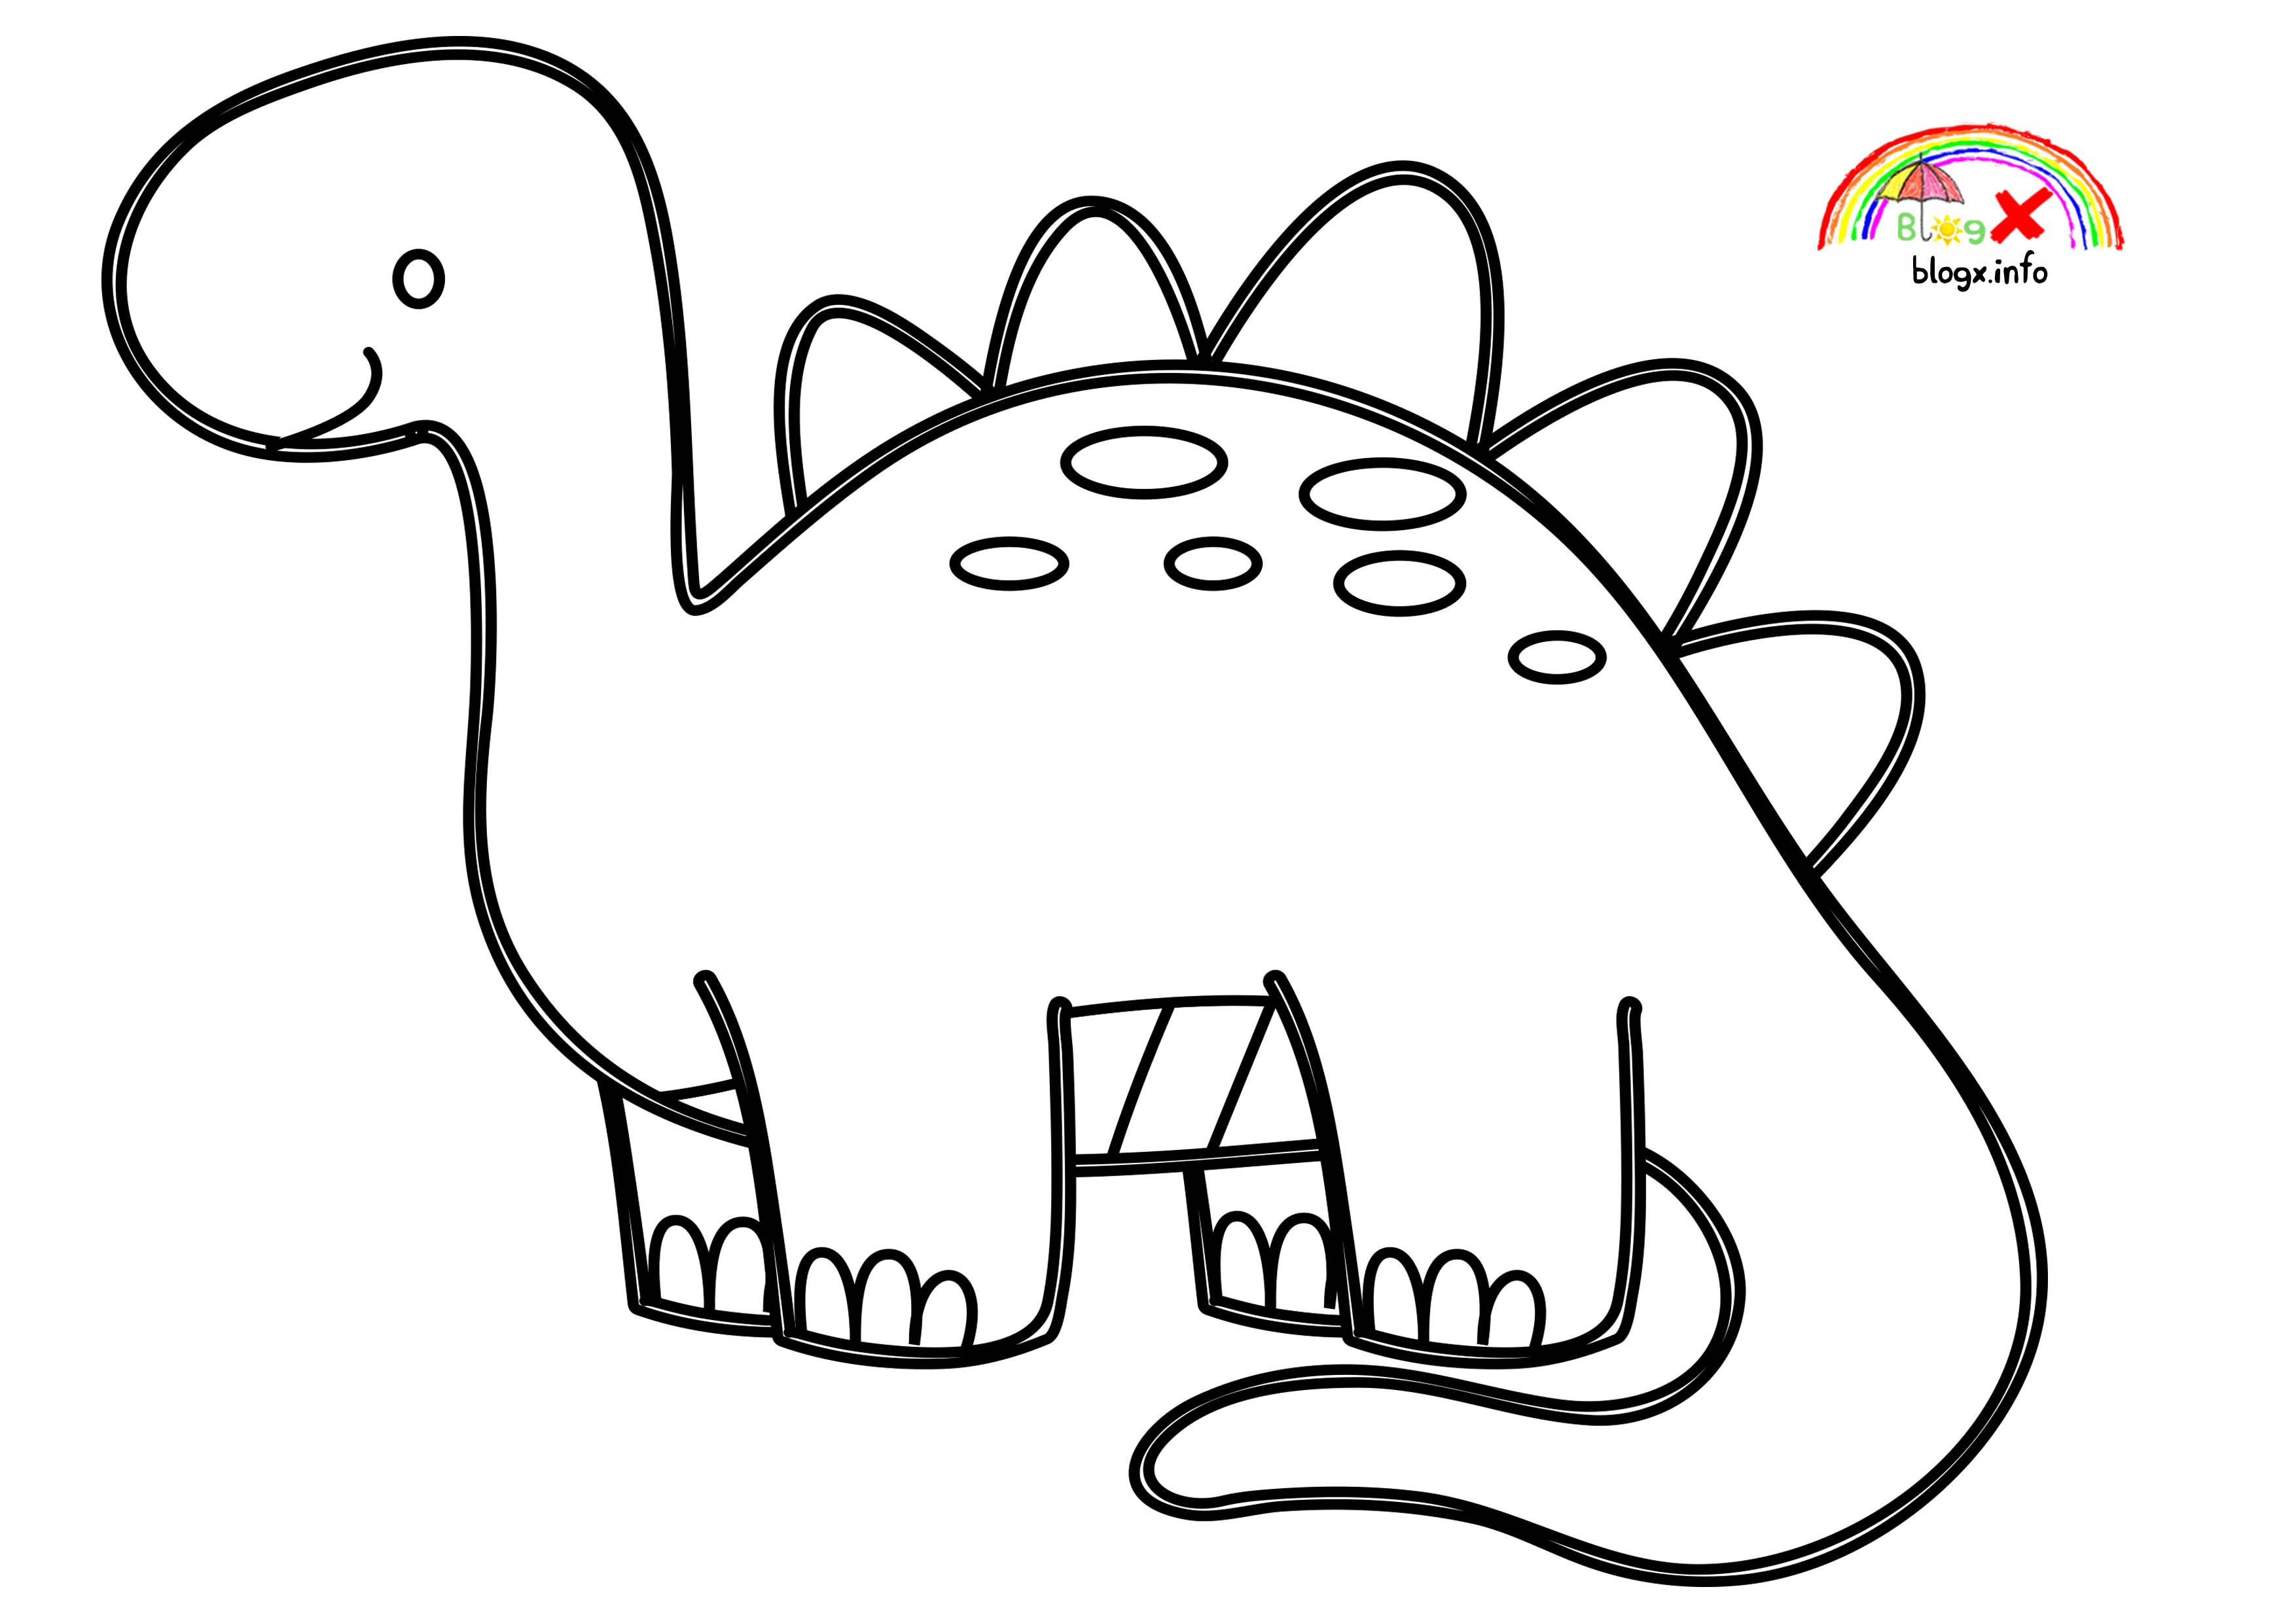 Easy Dinosaurs Coloring Page For Kids Preschool Dinosaur Coloring Pages Dinosaur Coloring Coloring Pages